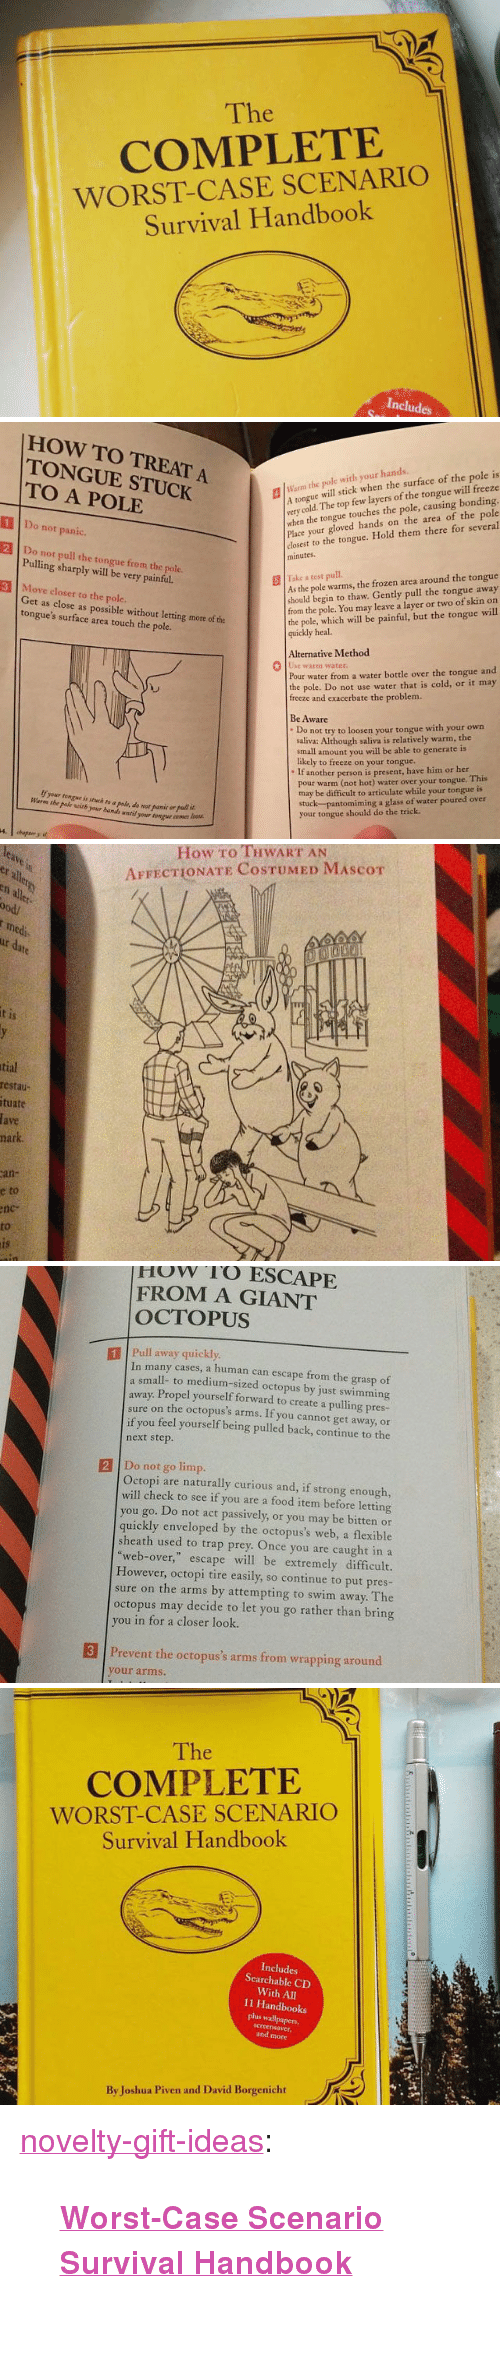 Food, Frozen, and Trap: The  iC  COMPLETE  WORST-CASE SCENARIO  Survival Handbook  Includes   HOW TO TREAT A  TONGUE STUCK  TO A POLE  m the pole with your hands.  A tongue  very cold. The top few layers of the tongue will freeze  when the tongue touches the pole, causing bonding.  Place your gloved hands on the area of the pole  closest to the tongue. Hold them there for several  minutes  will stick when the surface of the pole is  1 Do not panic.  2 Do not pull the tongue from the pole.  3 Move closer to the pole.  Pulling sharply will be very painful.  As the pole warms, the frozen area around the tongue  should begin to thaw. Gently pull the tongue away  from the pole. You may leave a layer or two of skin on  the pole, which will be painful, but the tongue will  quickly heal.  | İake  test pull.  Get as close as possible without letting more of the  tongue's surface area touch the pole.  Alternative Method  0  warm water  Pour water from a water bottle over the tongue and  the pole. Do not use water that is cold, or it may  freeze and exacerbate the problem.  Be Aware  Do not try to loosen your tongue with your own  saliva: Although saliva is relatively warm, the  small amount you will be able to generate is  likely to freeze on your tongue.  . If  if your tongue is stuck to a pale, do nor panic er pullit  Warm the pole with your bands until your tongue comes loor  another person is present, have him or her  pour warm (not hot) water over your tongue. This  may be difficult to articulate while your tongue is  stuck  your tongue should do the trick.  pantomiming a glass of water poured over   How To THWART AN  AFFECTIONATE COSTUMED MASCOT  er aller  cn all  ood/  medi  t is  tial  restau-  tuate  ave  mark  an-  e to  nc  to   HuW 'T'O ESCAPE  FROM A GIANT  OCTOPUS  1Pull away quickly  In many cases, a human can escape from the grasp of  a small- to medium-sized octopus by just swimming  away. Propel yourself forward to create a pulling pres-  sure on the octopus